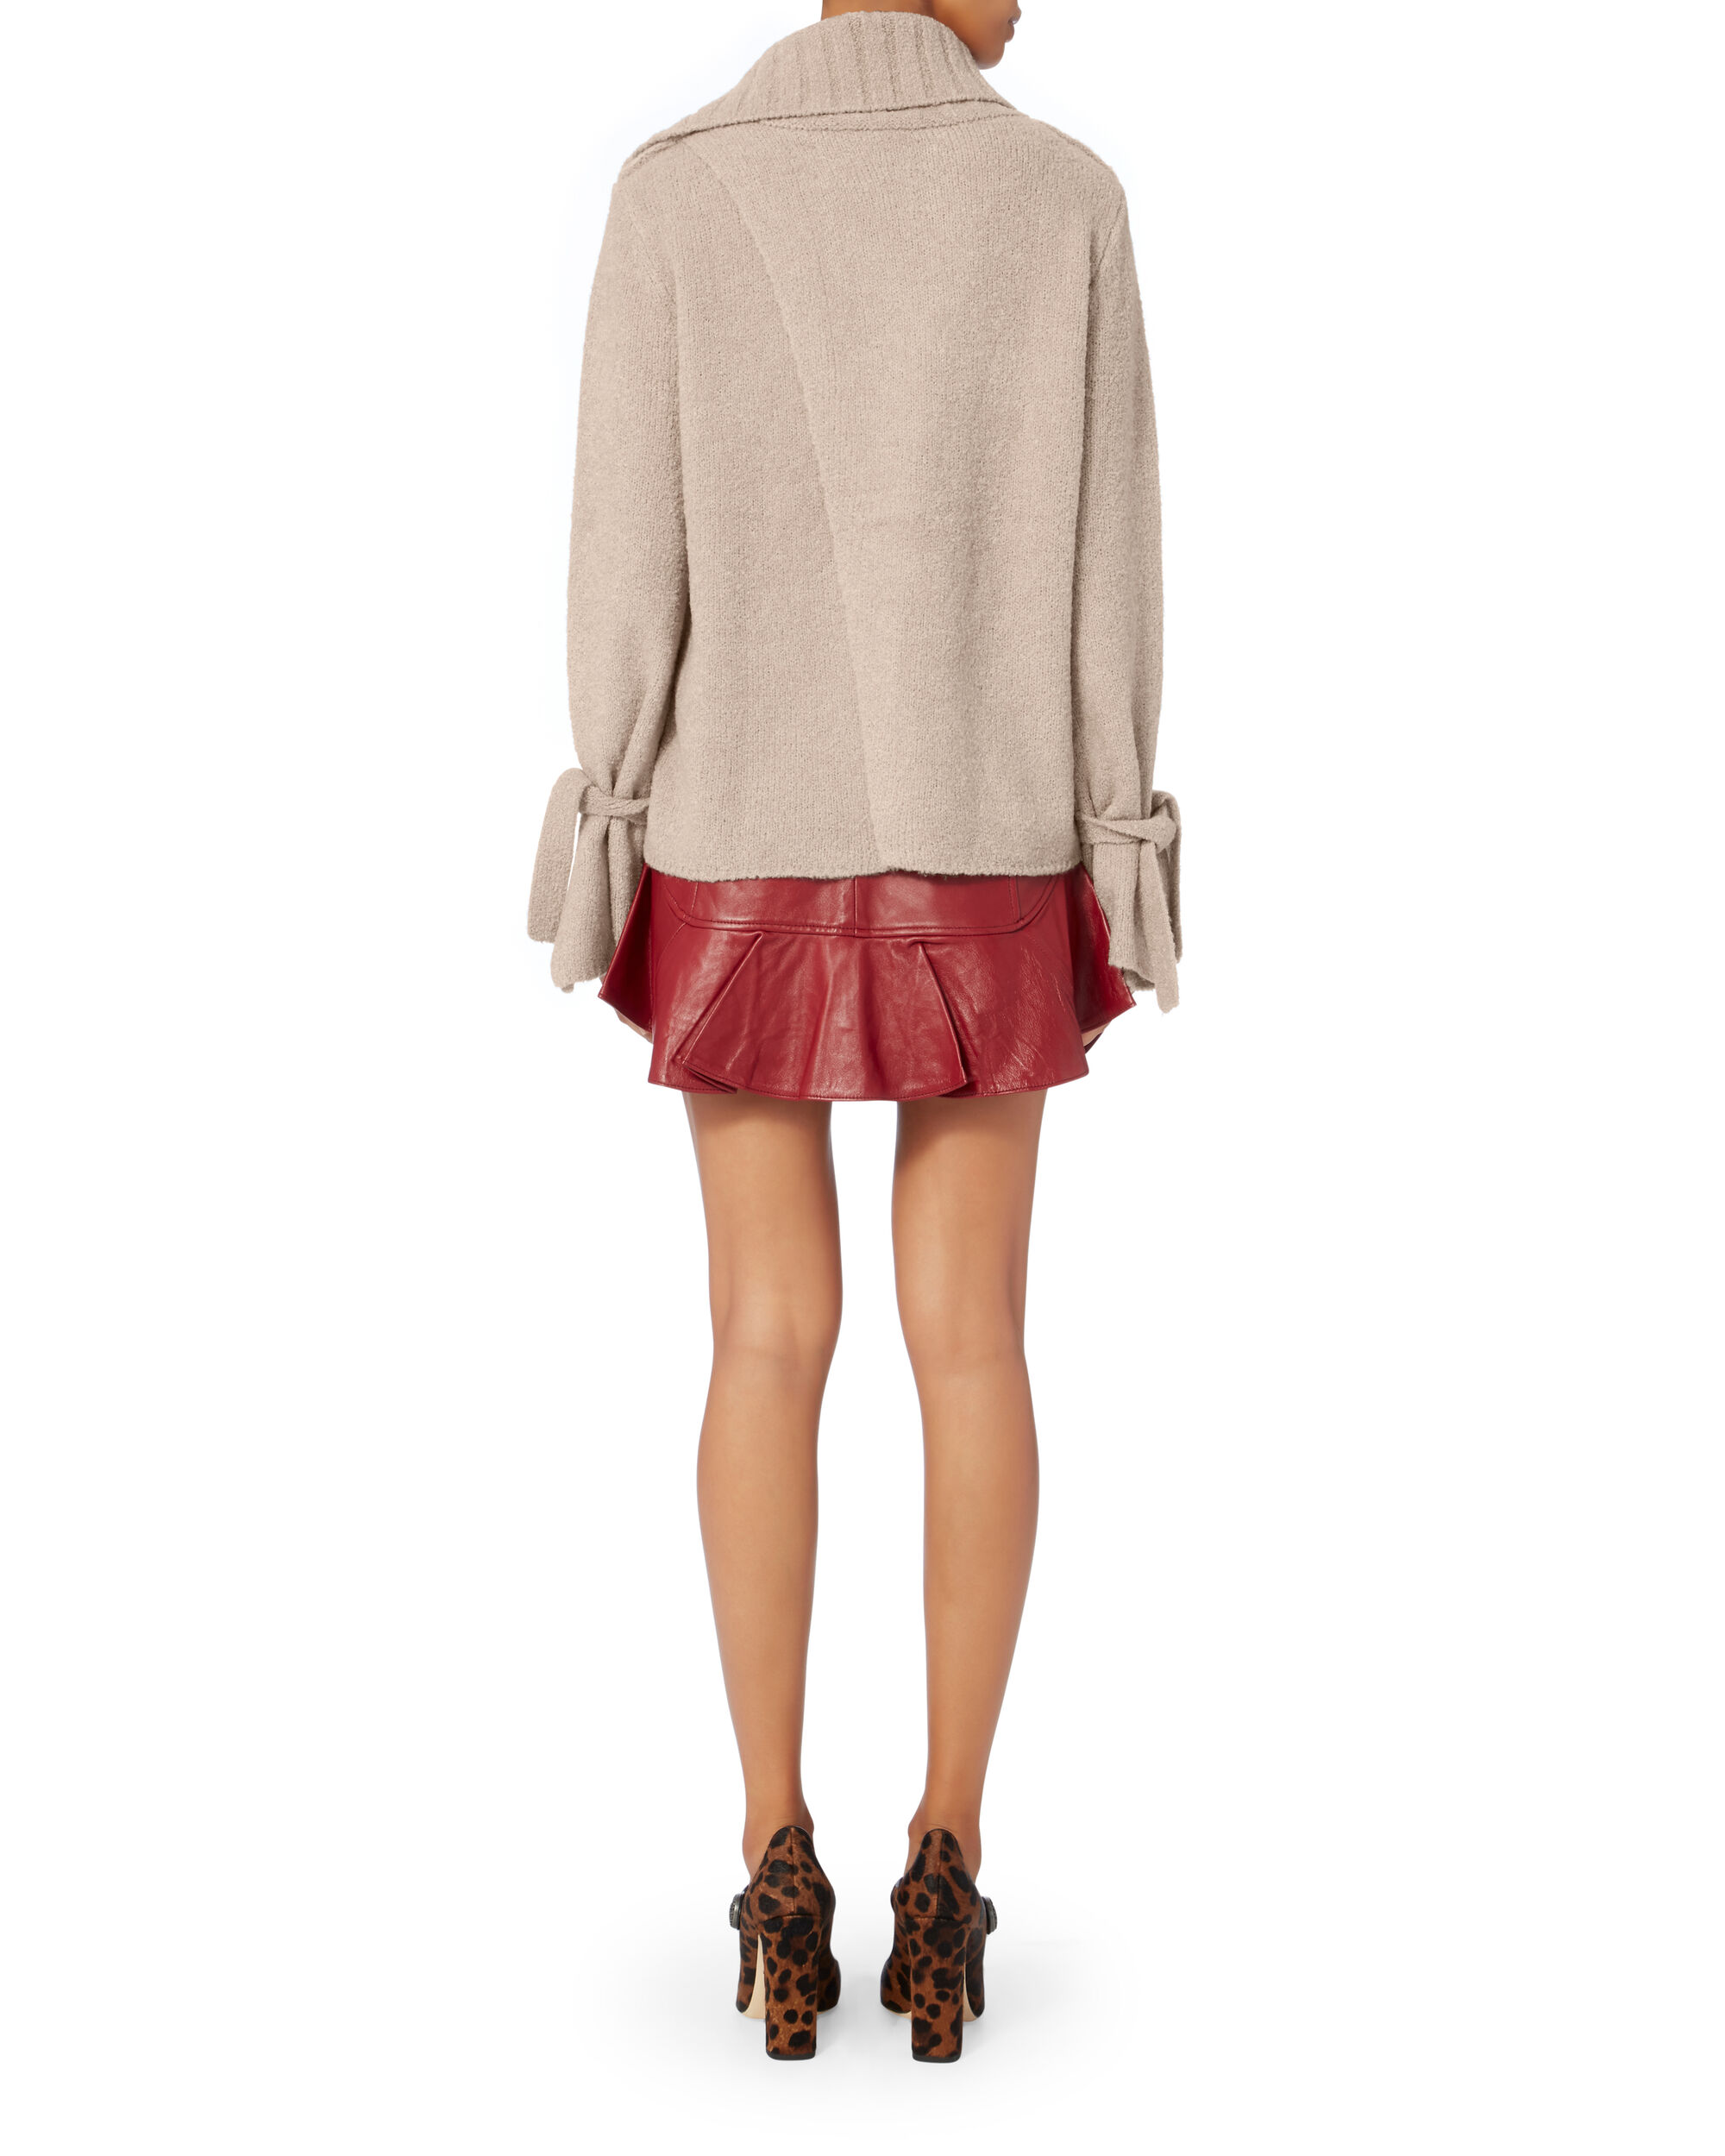 Agna Tie Sleeve Pullover, PINK, hi-res